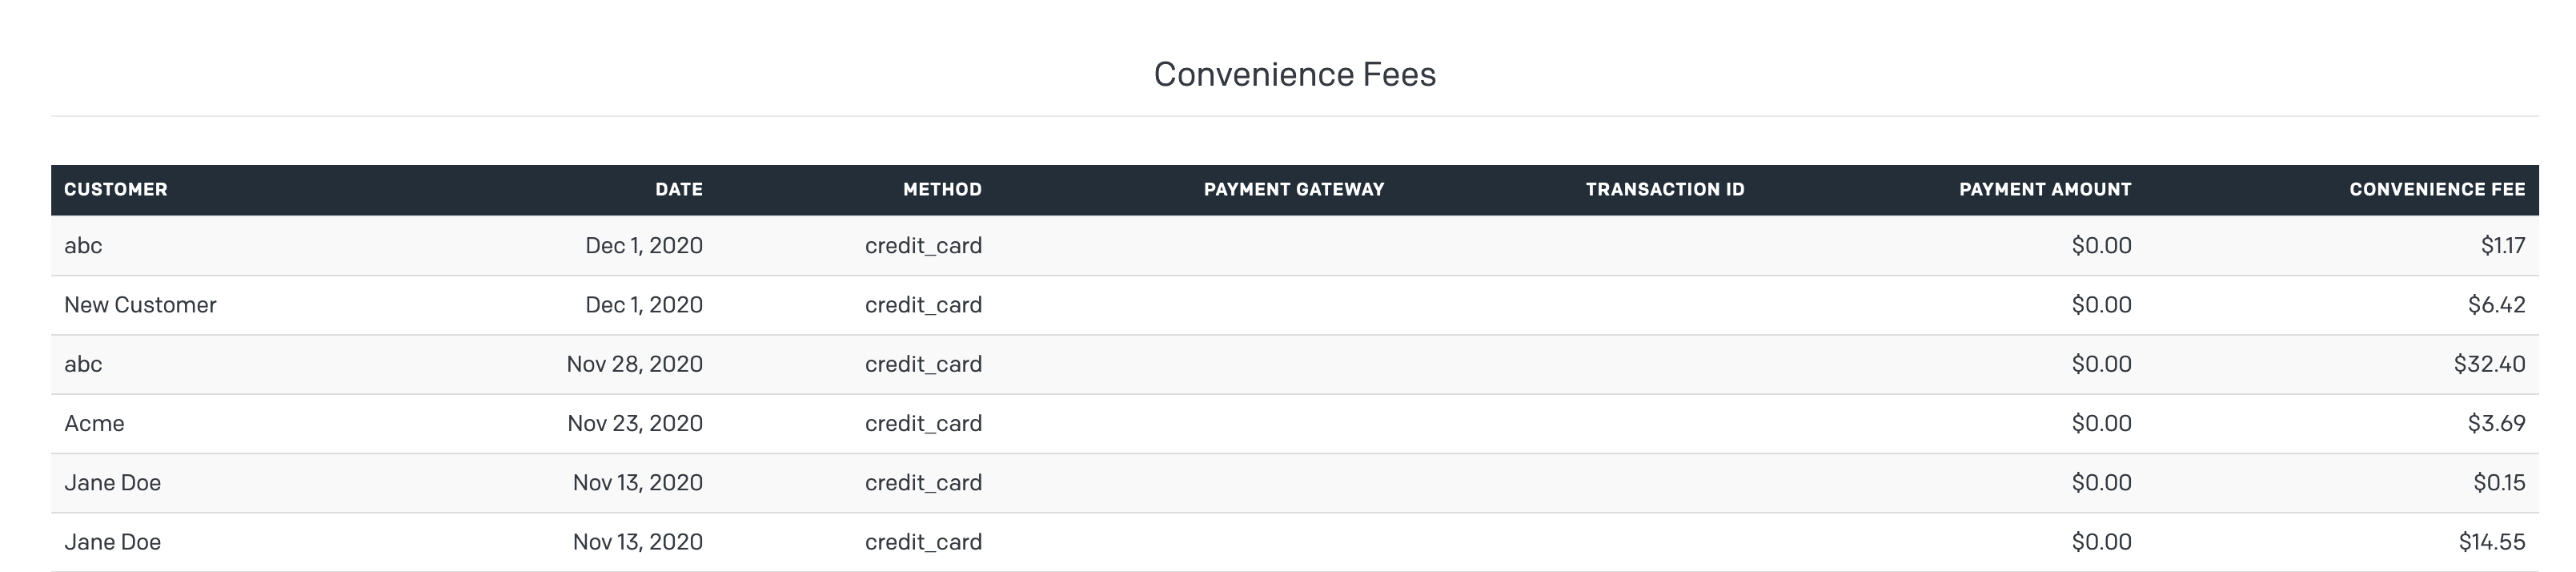 Convenience Fees Report